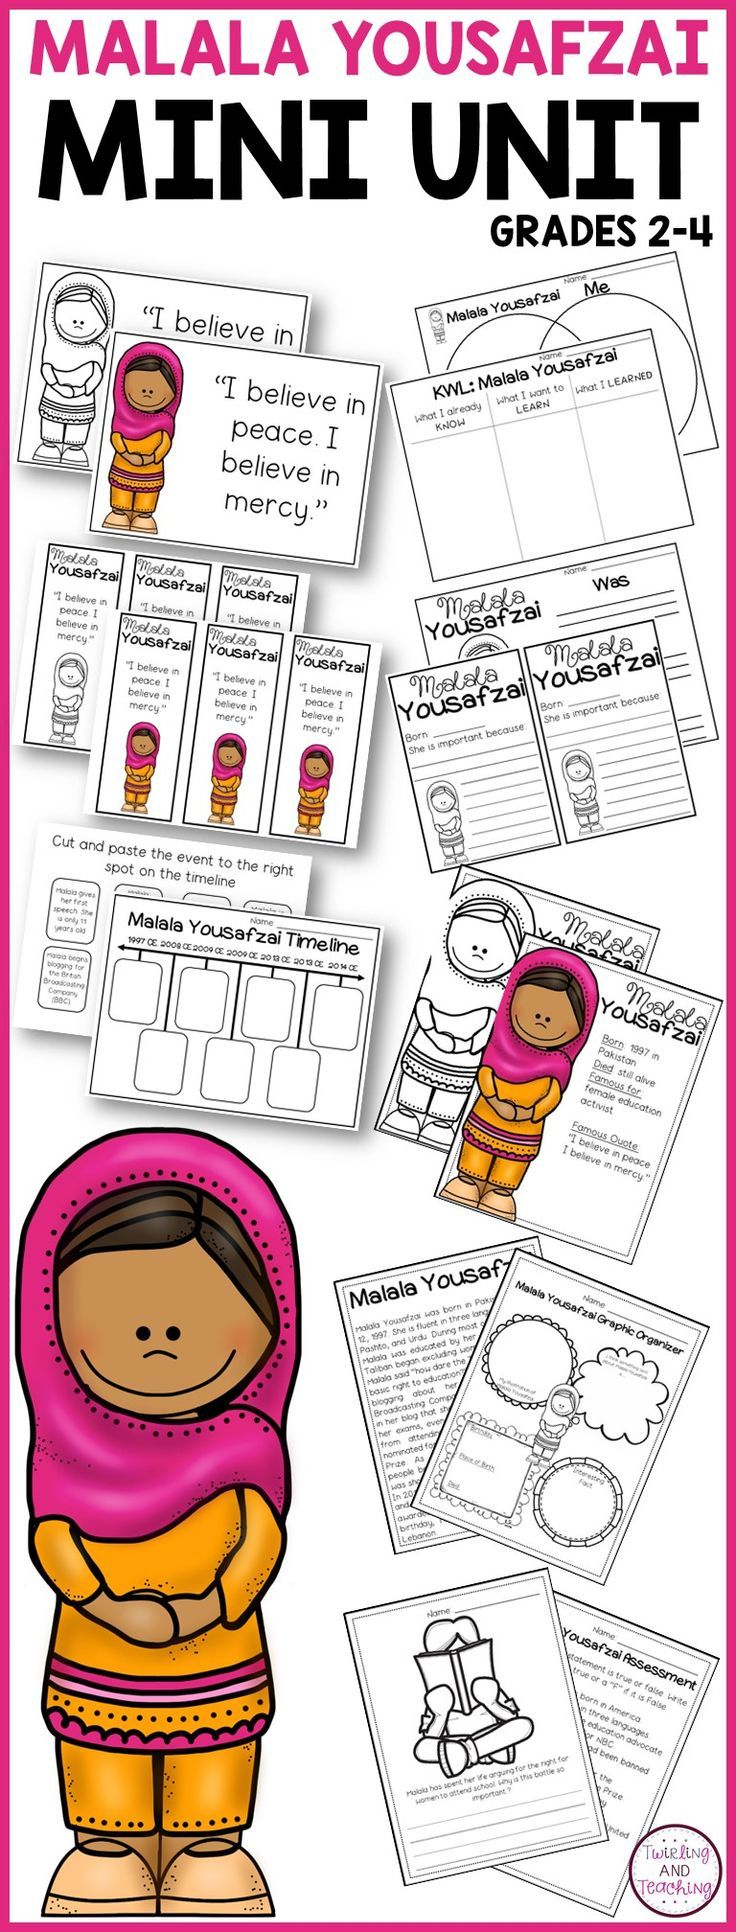 This set includes fun and engaging activities to teach your kids about Malala Yousafzai!